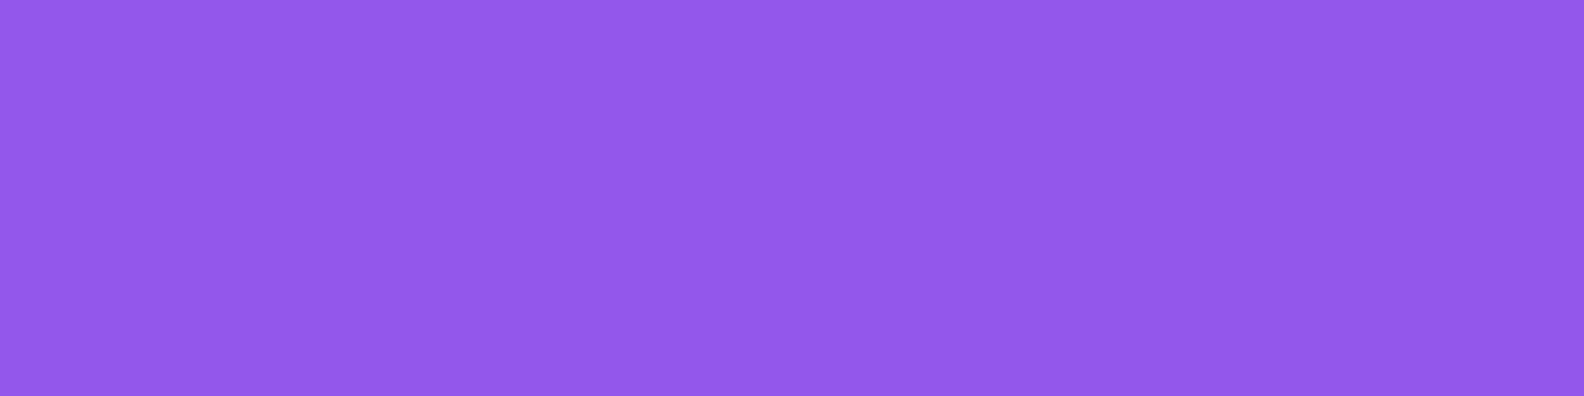 1584x396 Navy Purple Solid Color Background